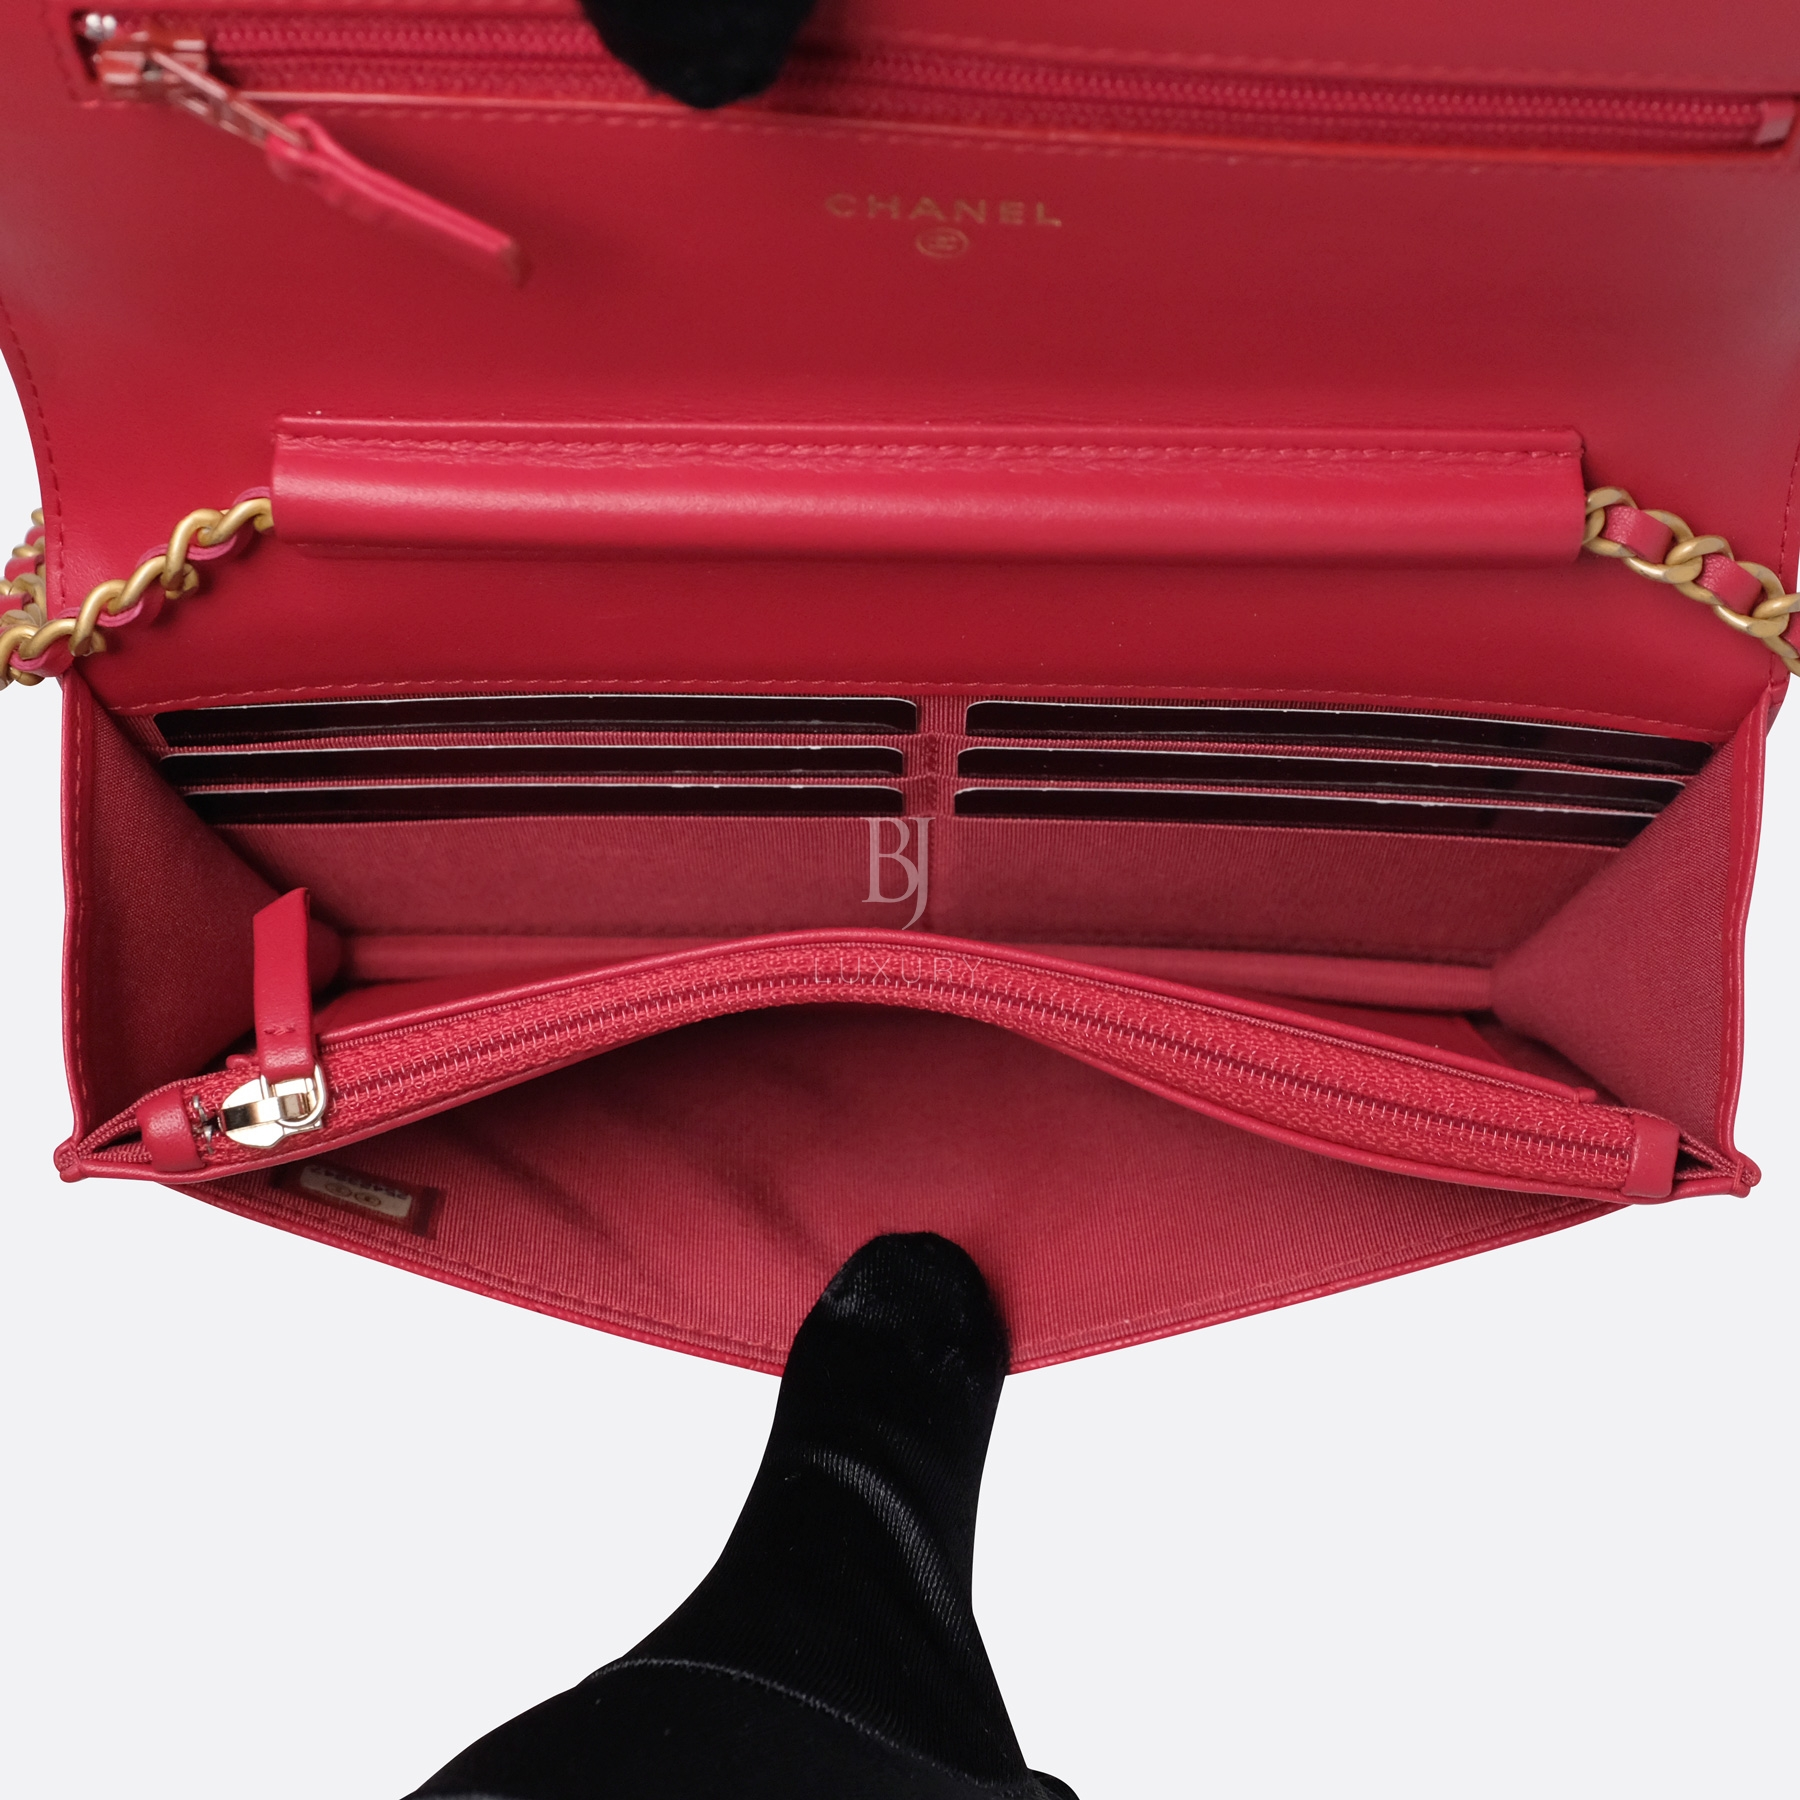 Chanel Wallet On Chain Red Caviar Brushed Gold BJ Luxury 15.jpg